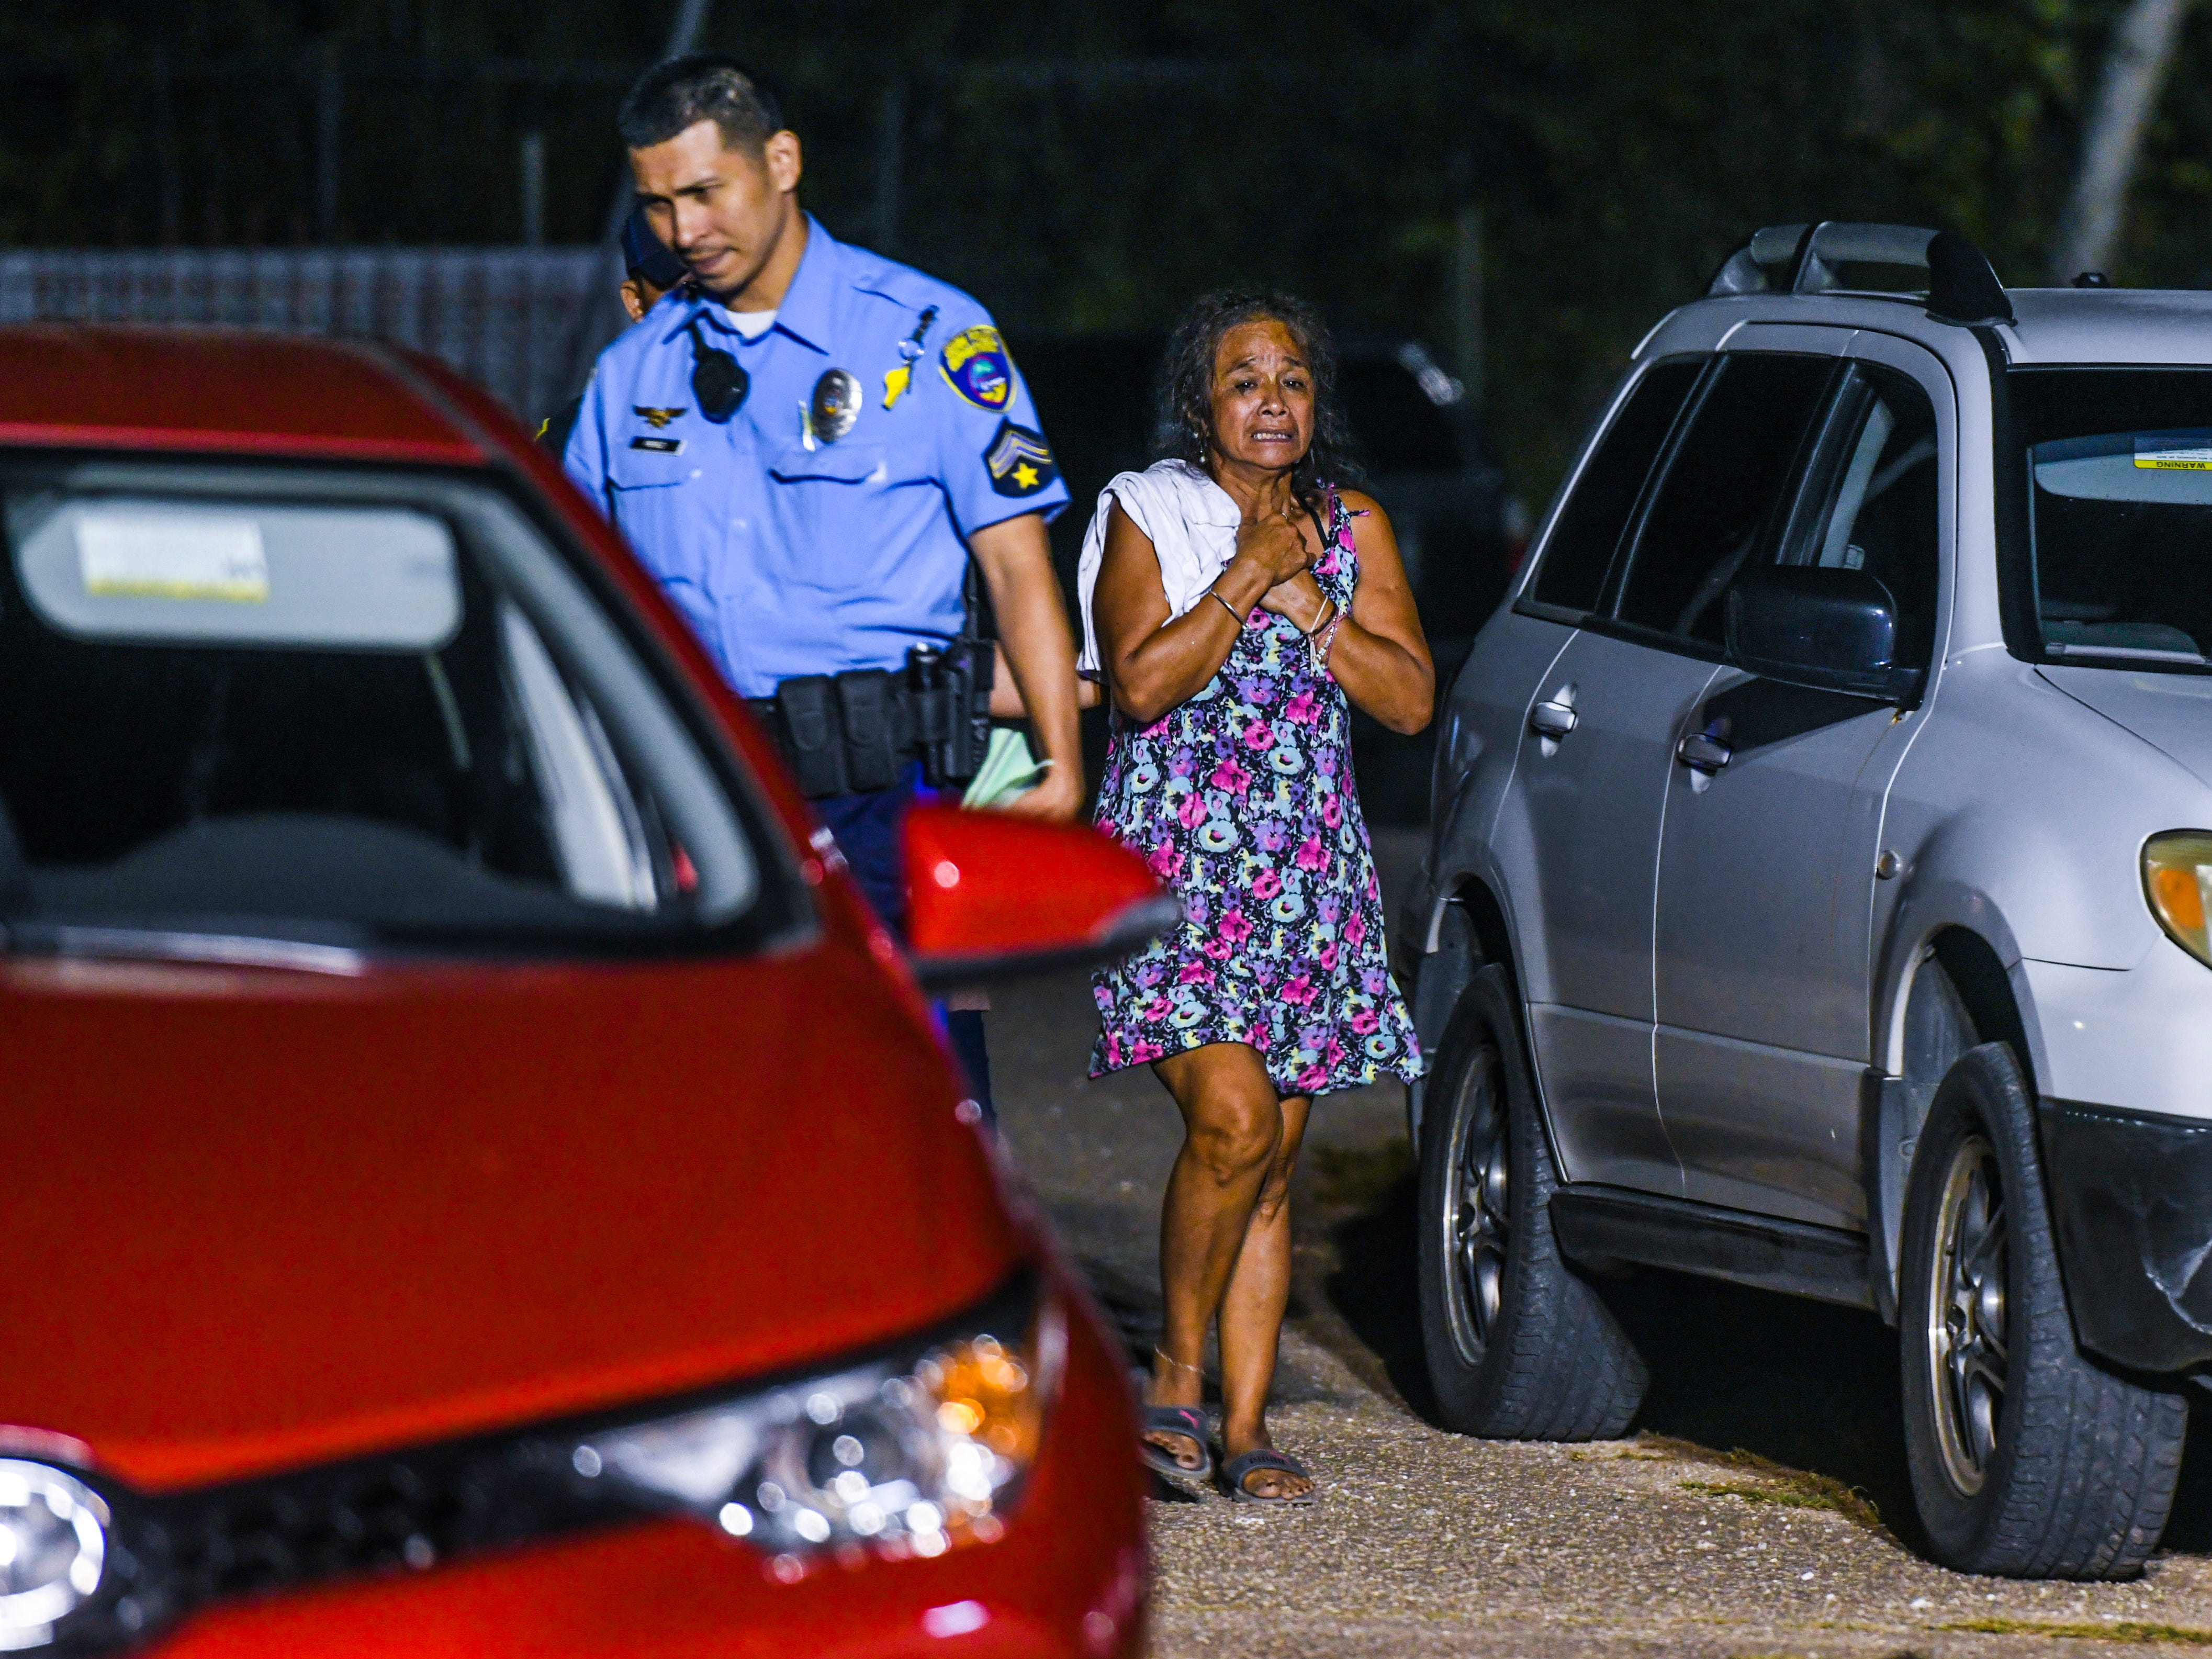 Emotions overcome Rose David as Guam Police Department officers conduct an investigation of a fatal auto-pedestrian incident in front of her Dededo home on the evening of Wednesday, May 7, 2019. David's four-year-old grandson, Jericho Zion David, died after being struck by a motorist driving in front of the family's home.